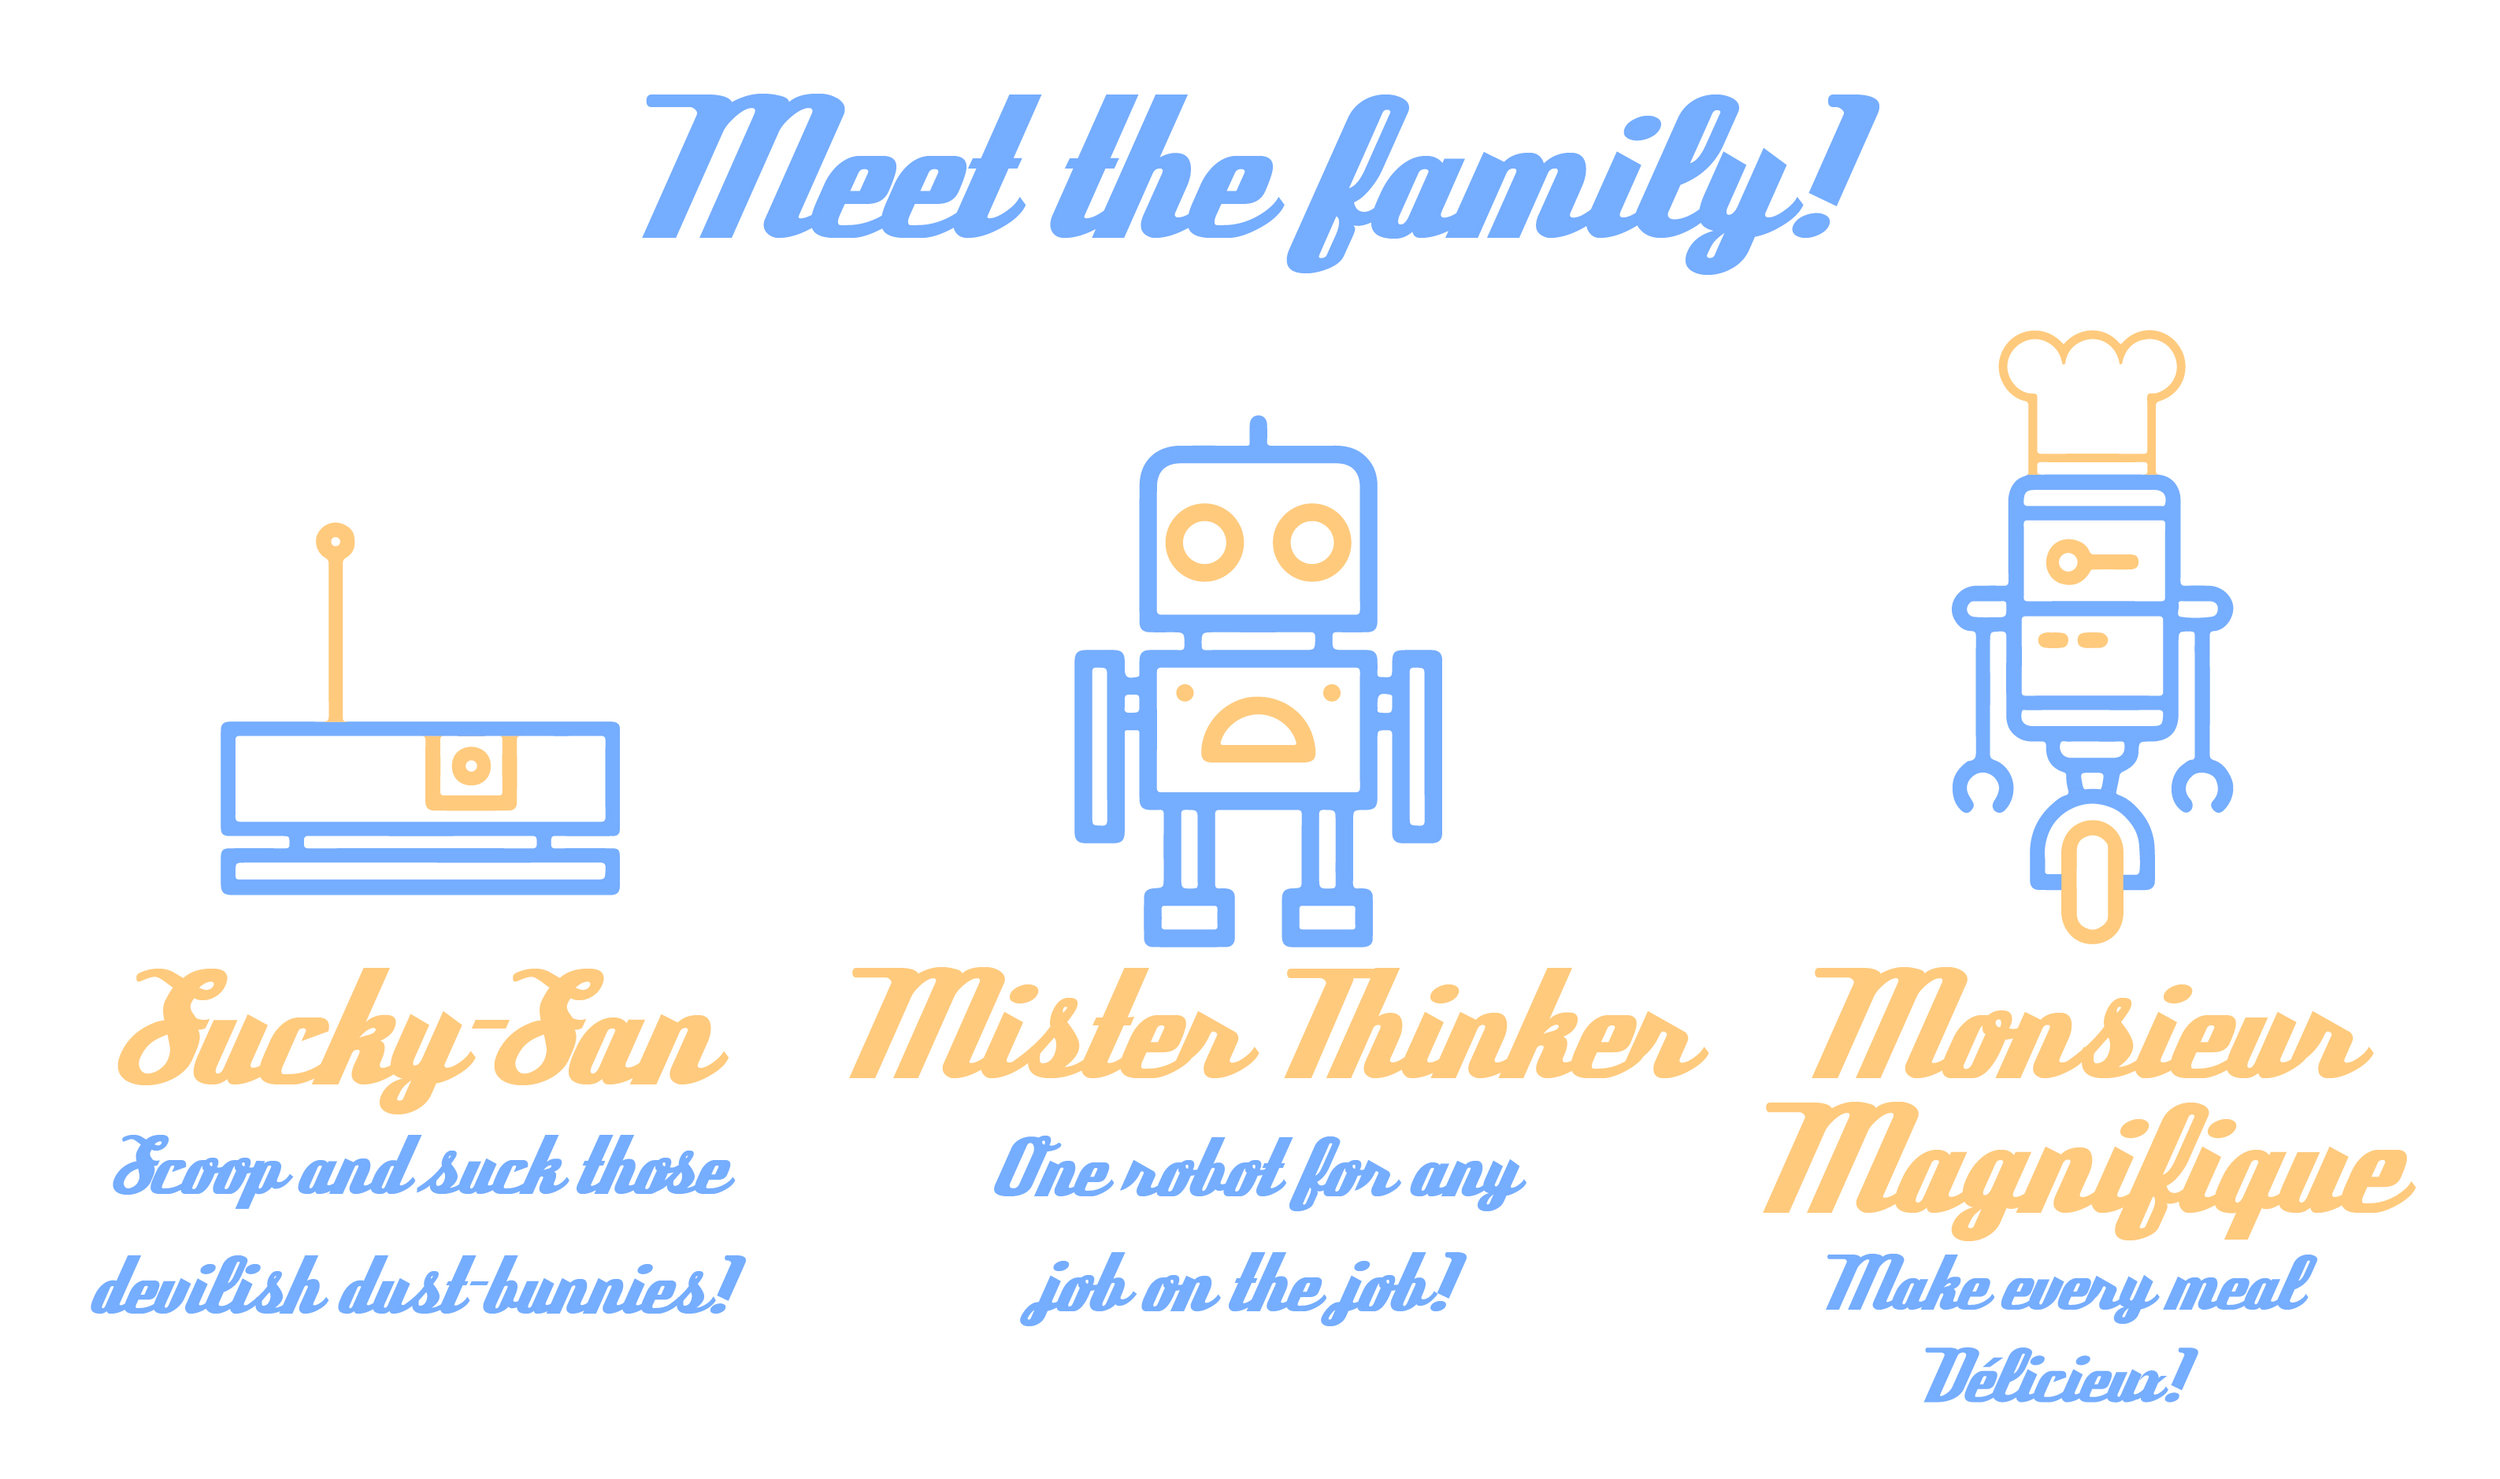 Meet the family: Sucky-San Mister Thinker Monsieur Magnifique